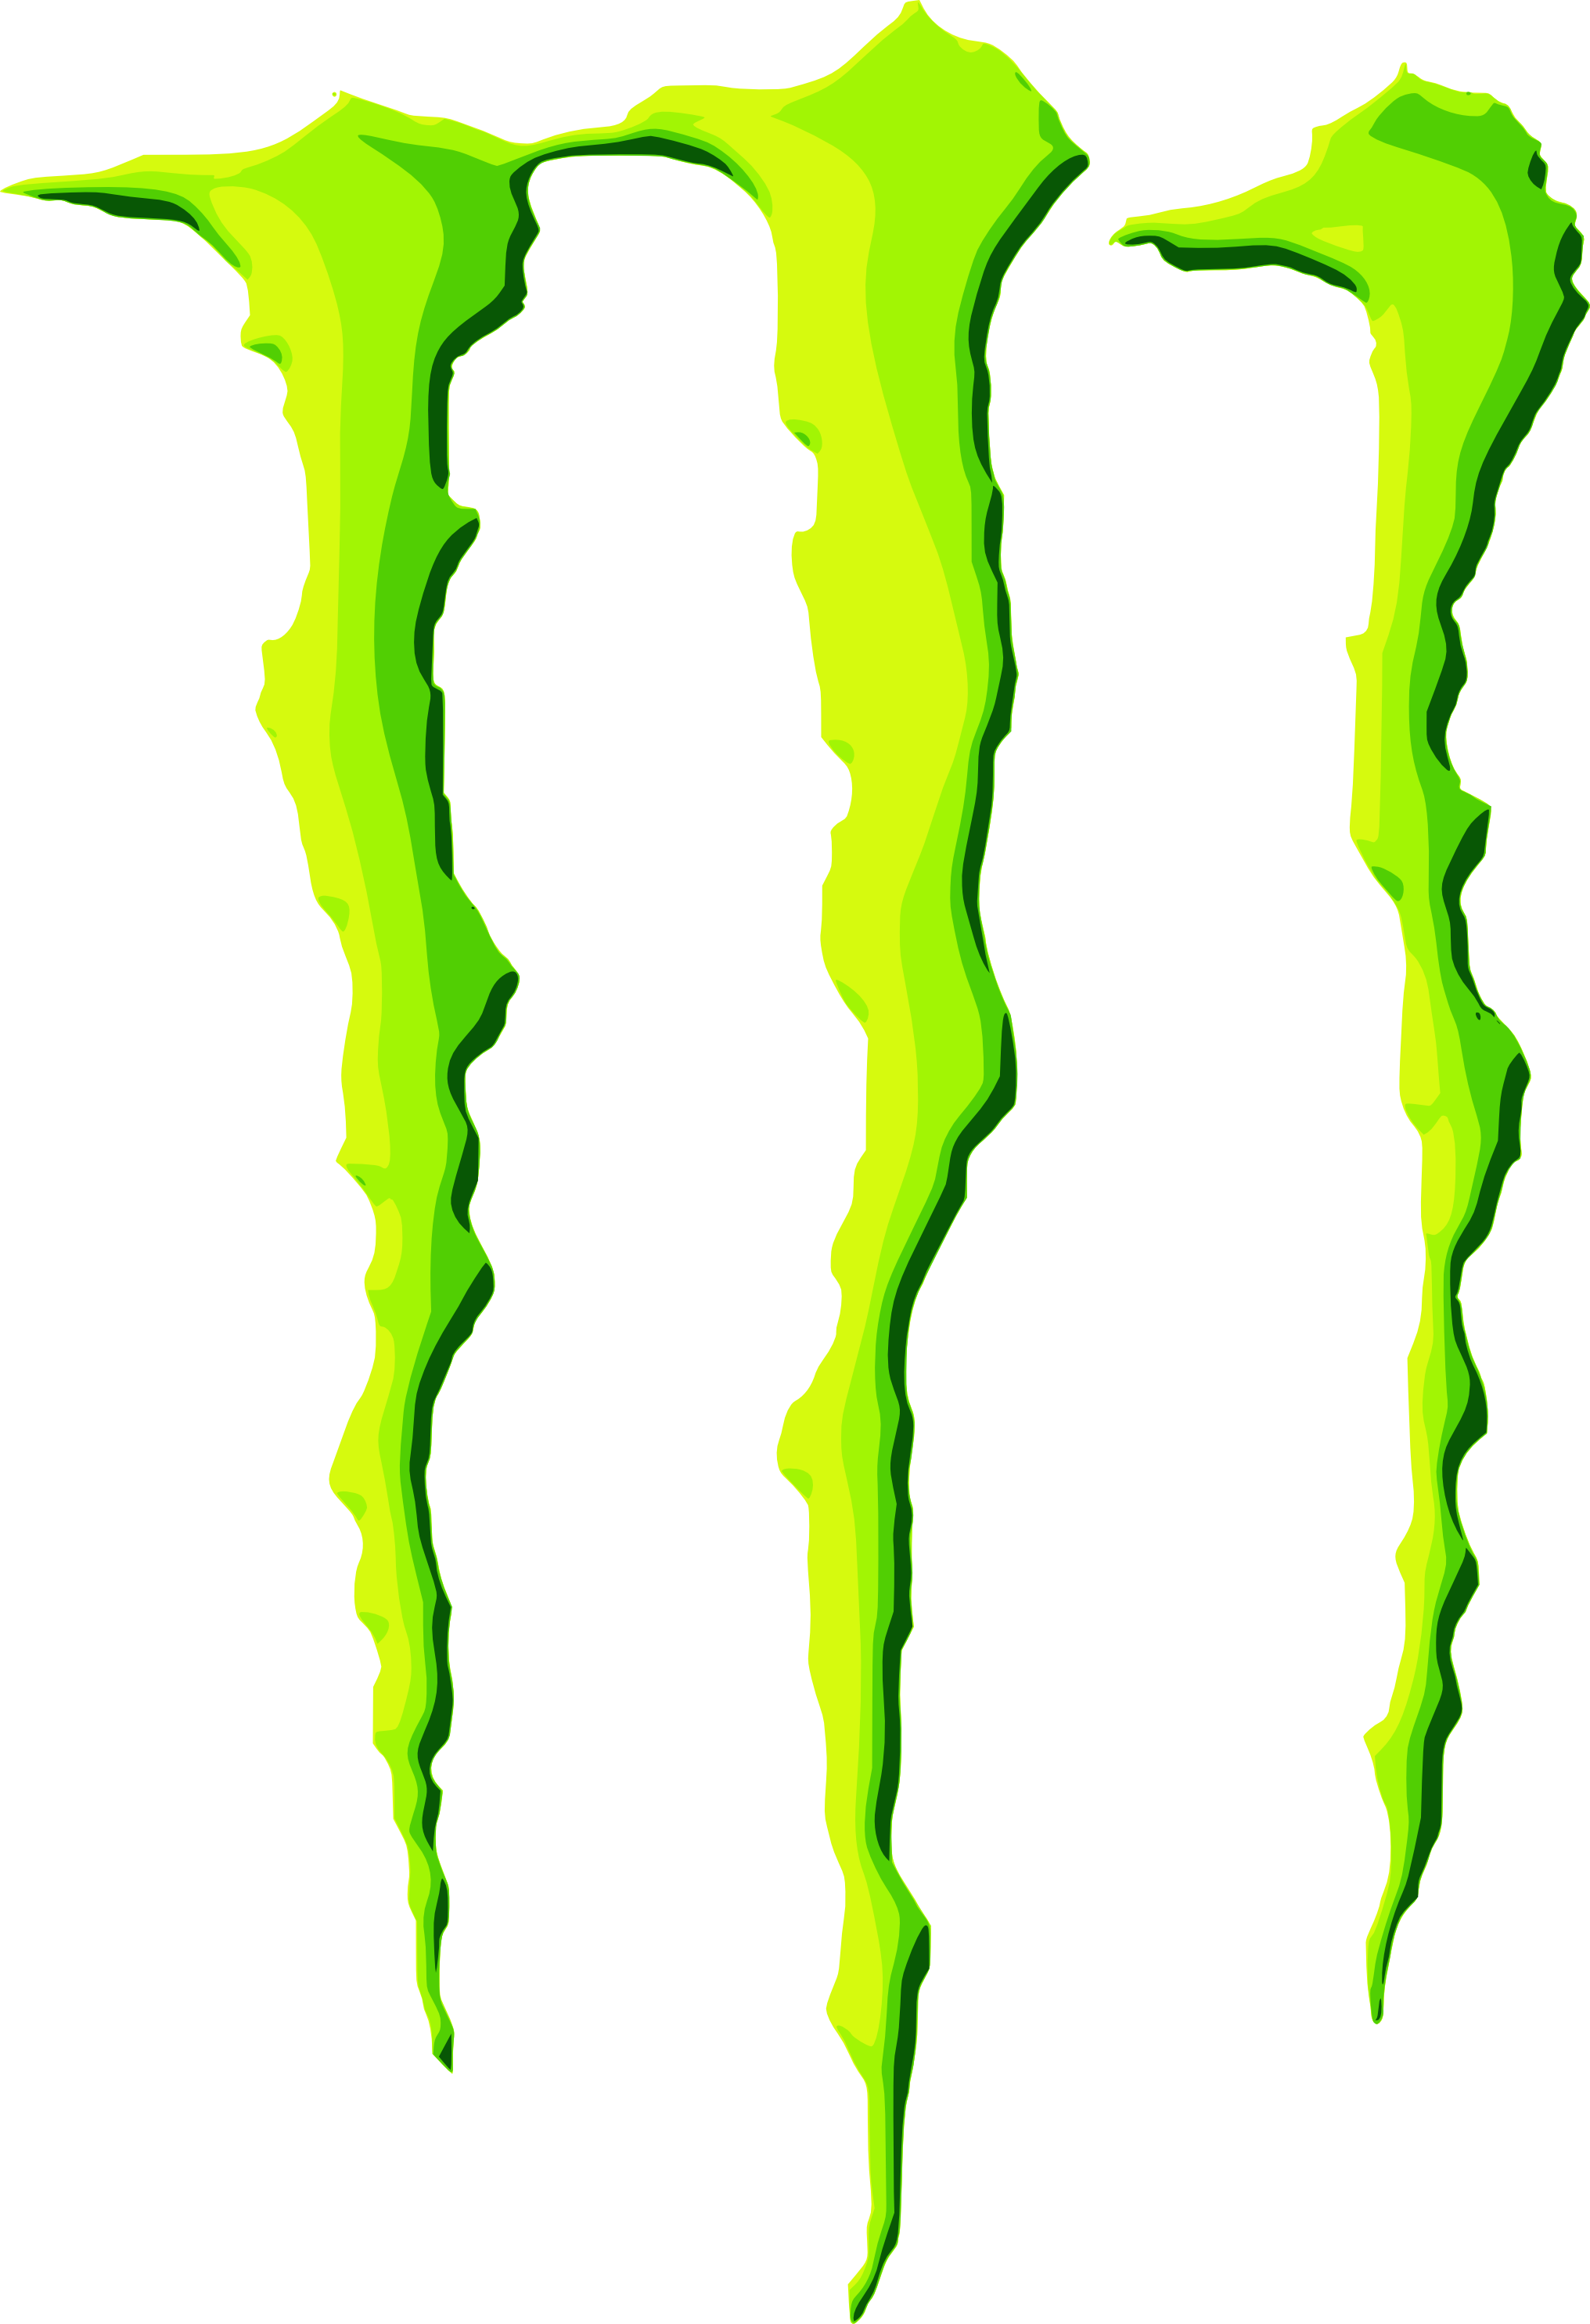 Free Monster Logo, Download Free Clip Art, Free Clip Art on.